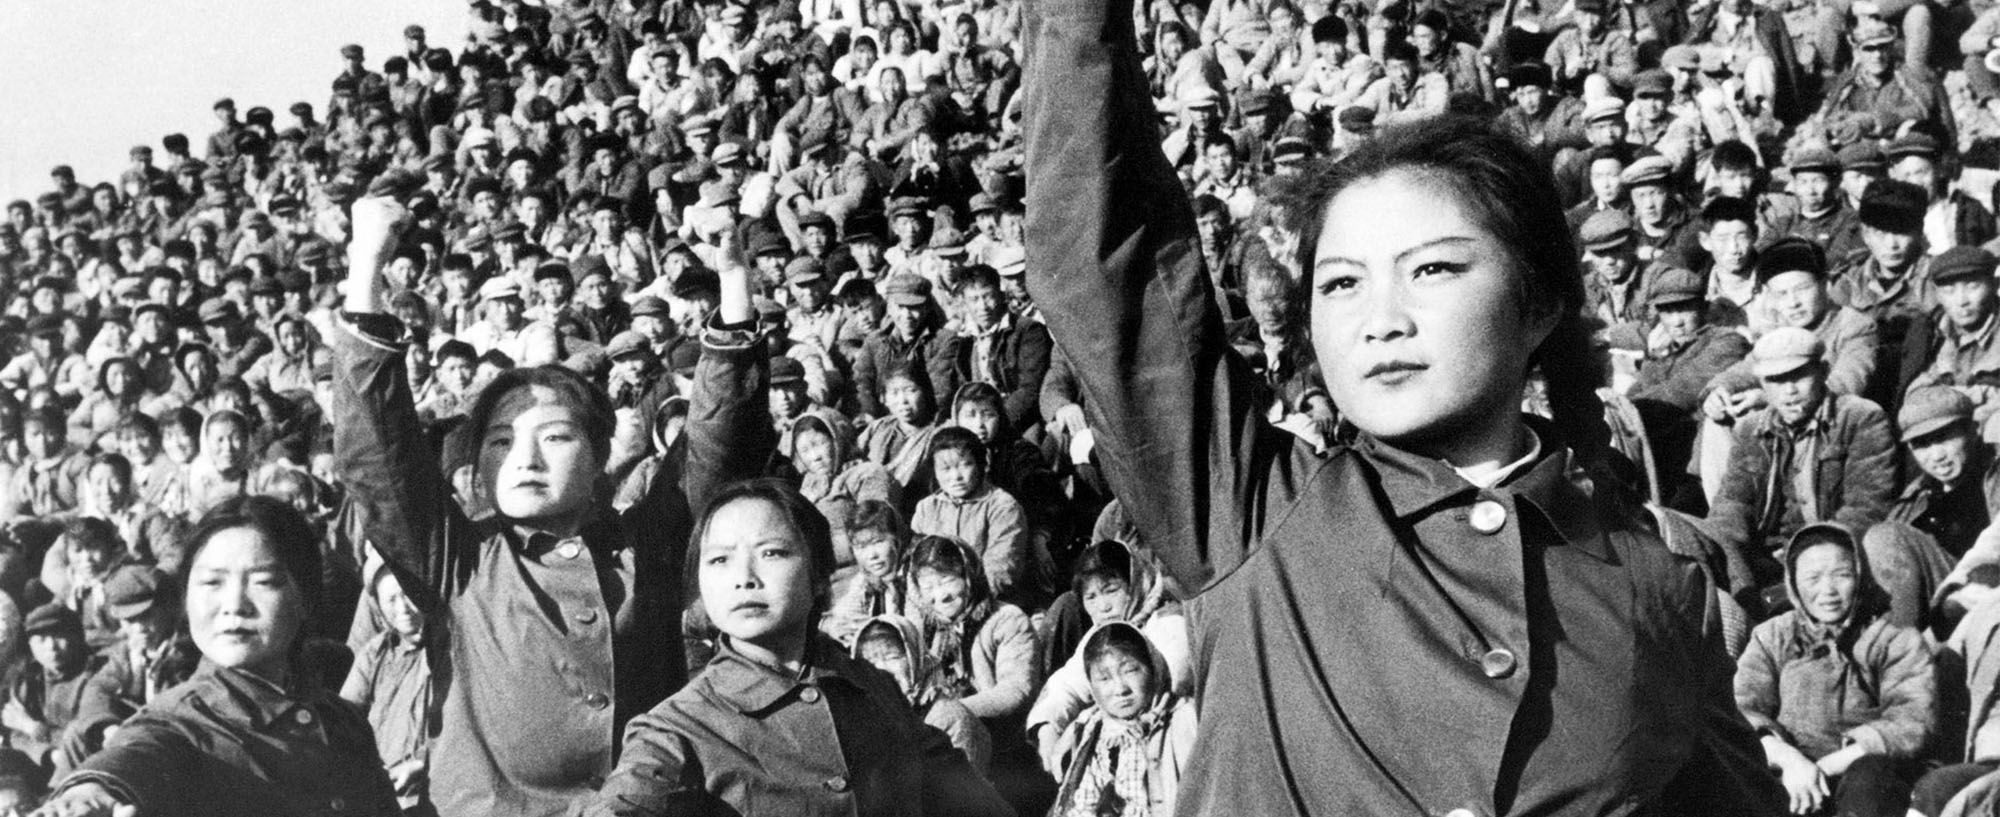 the chinese revolution of 1949 essay Without the 1949 chinese revolution, china would not have been able to make the enormous progress that it has the workers of the world can point to the colossal advances that china made after the revolution as proof of the potential of a nationalized planned economy.